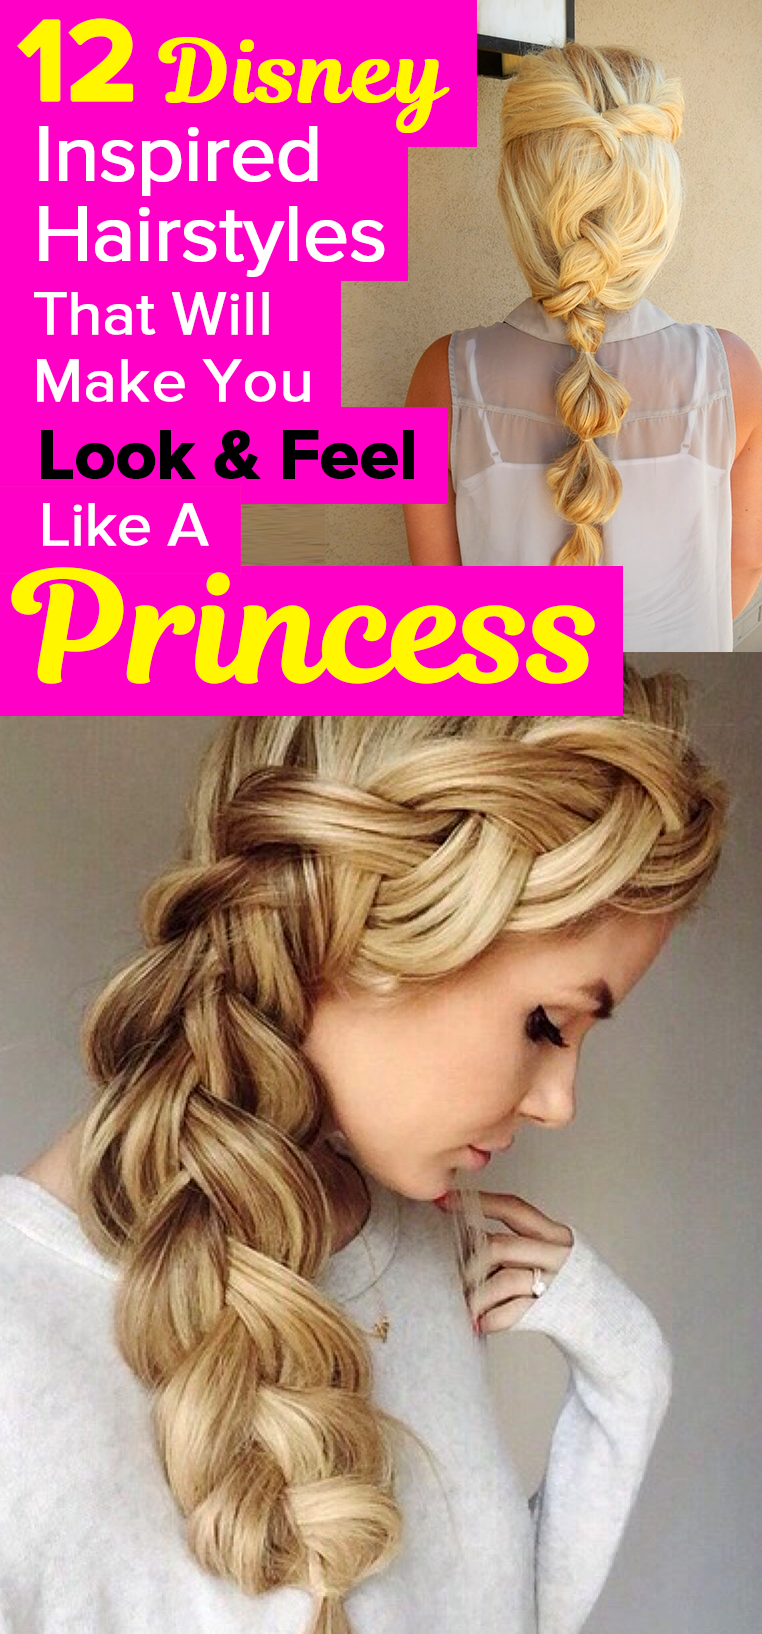 12 disney inspired hairstyles that will make you look & feel like a